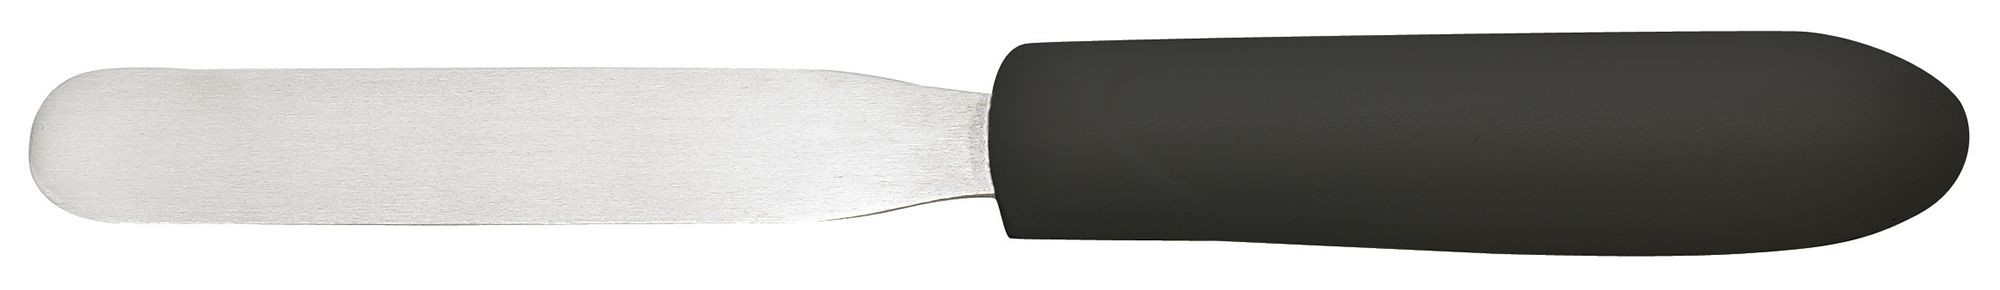 "Winco tkps-4 Bakery Spatula 4-1/4"" Blade, Black Polypropylene Handle"